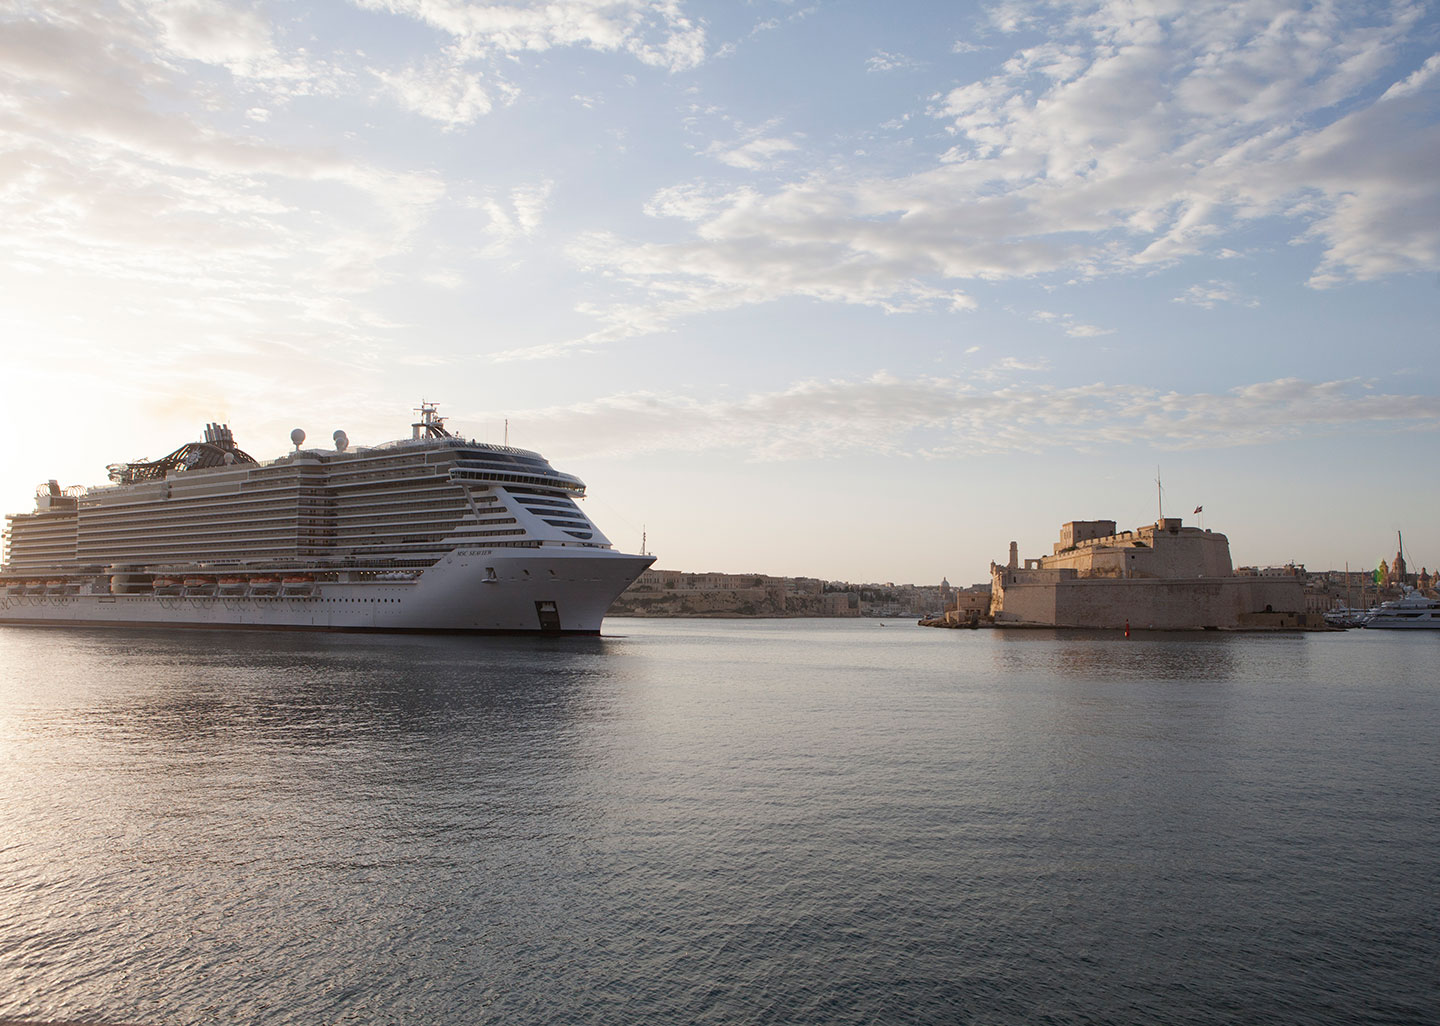 Valletta Cruise Port welcomes MSC Seaview